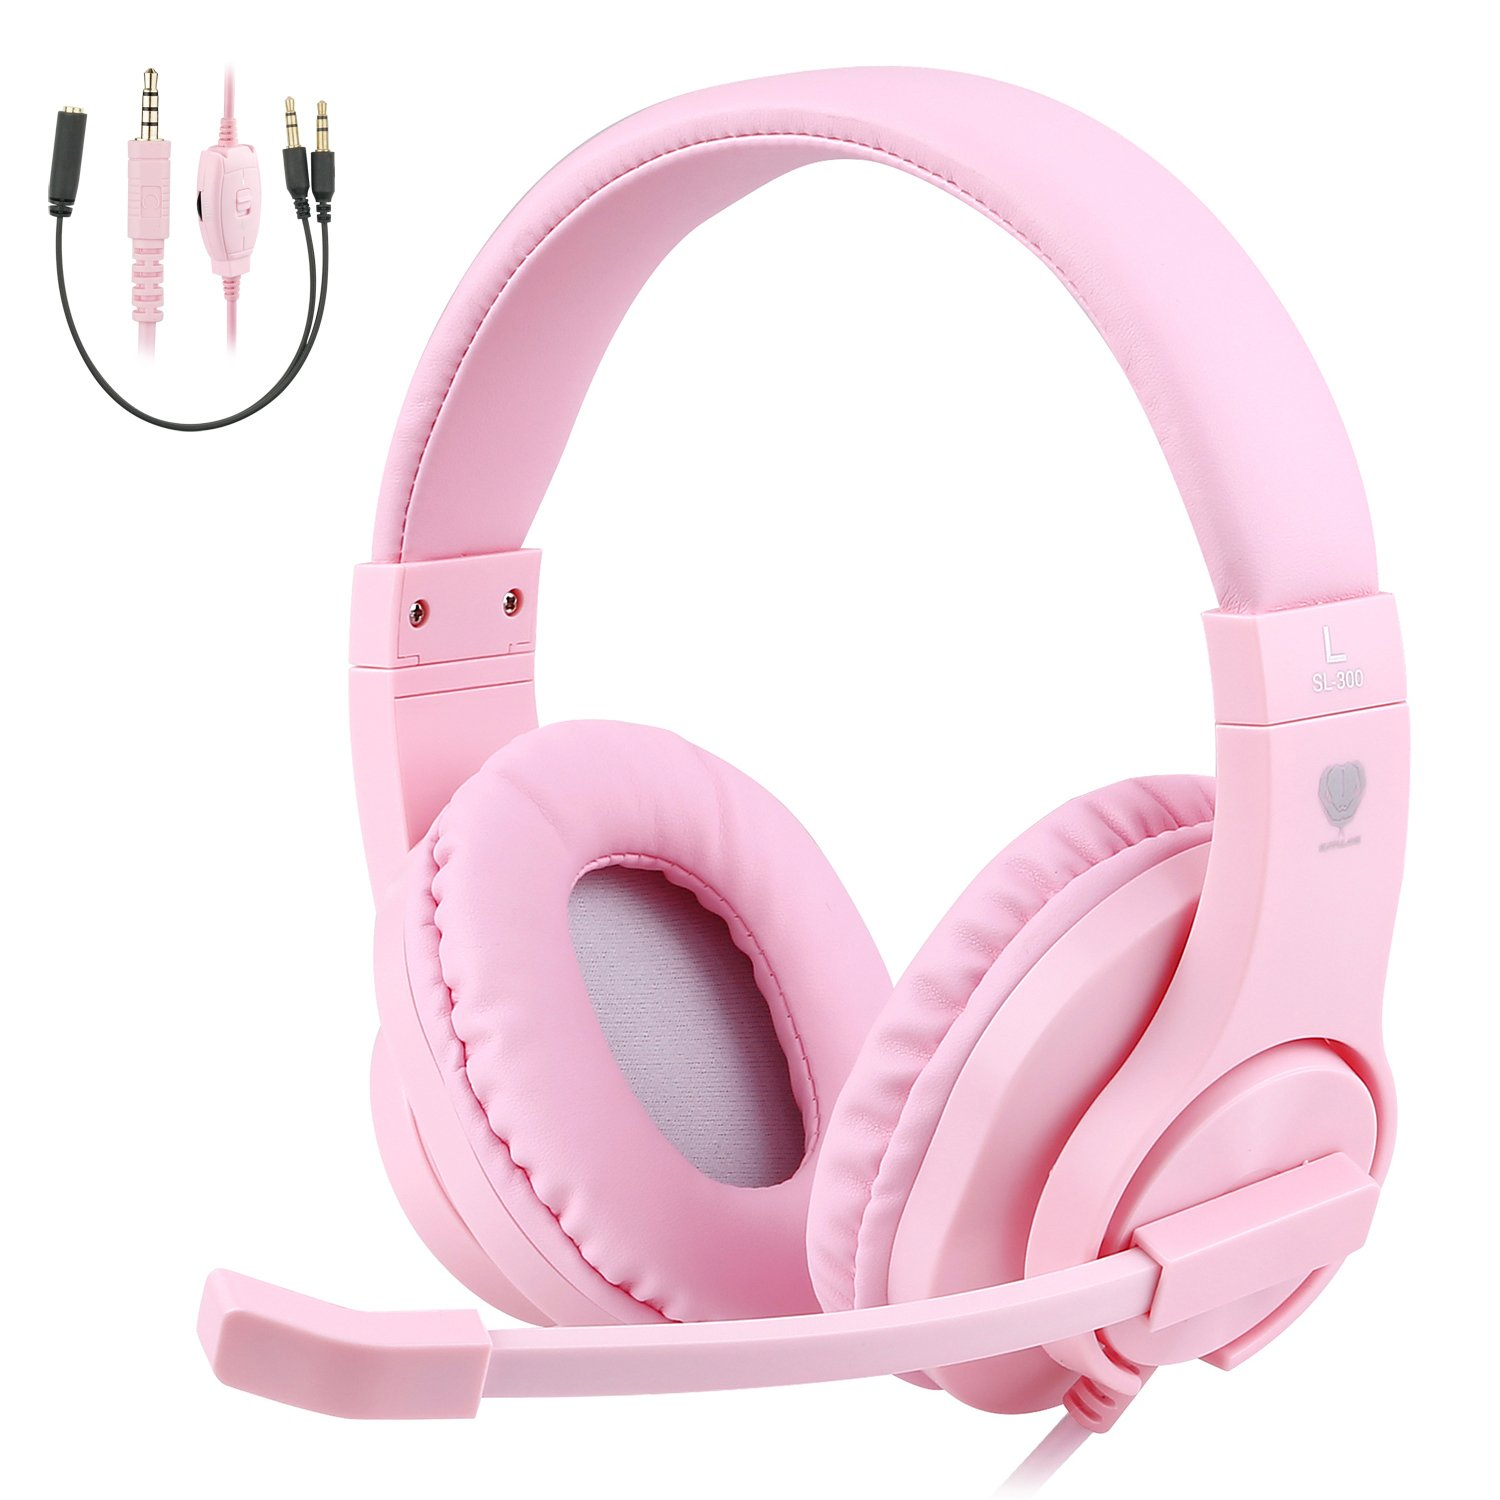 BlueFire 3.5mm PS4 Gaming Headset Bass Stereo Over-Ear Gaming Headphone with Microphone and Volume Control Compatible with PS4, New Xbox One, Xbox One S, Xbox One X, Nintendo Switch, PC(Pink) by BlueFire